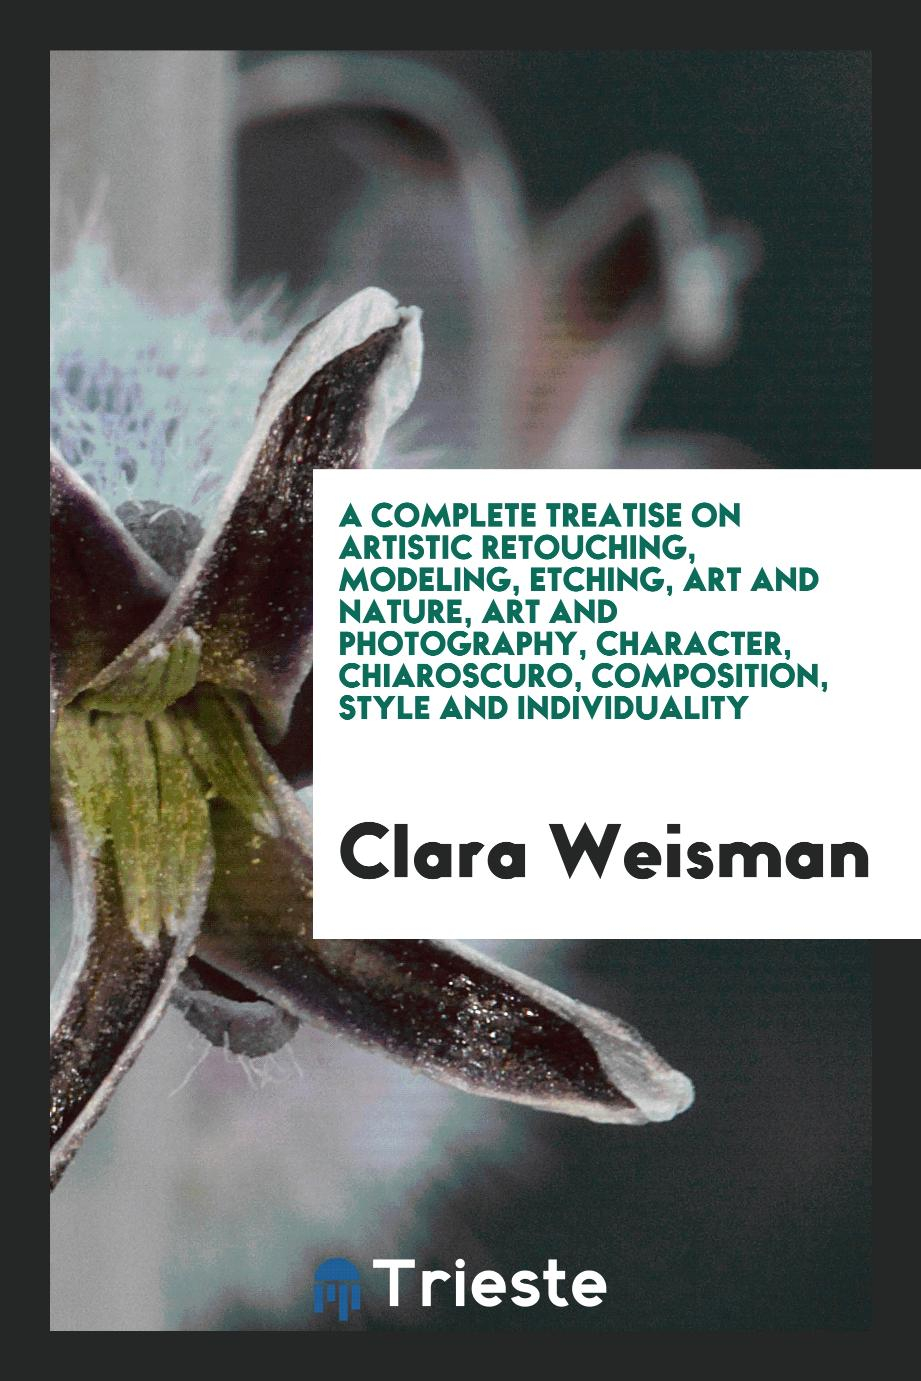 A complete treatise on artistic retouching, modeling, etching, art and nature, art and photography, character, chiaroscuro, composition, style and individuality